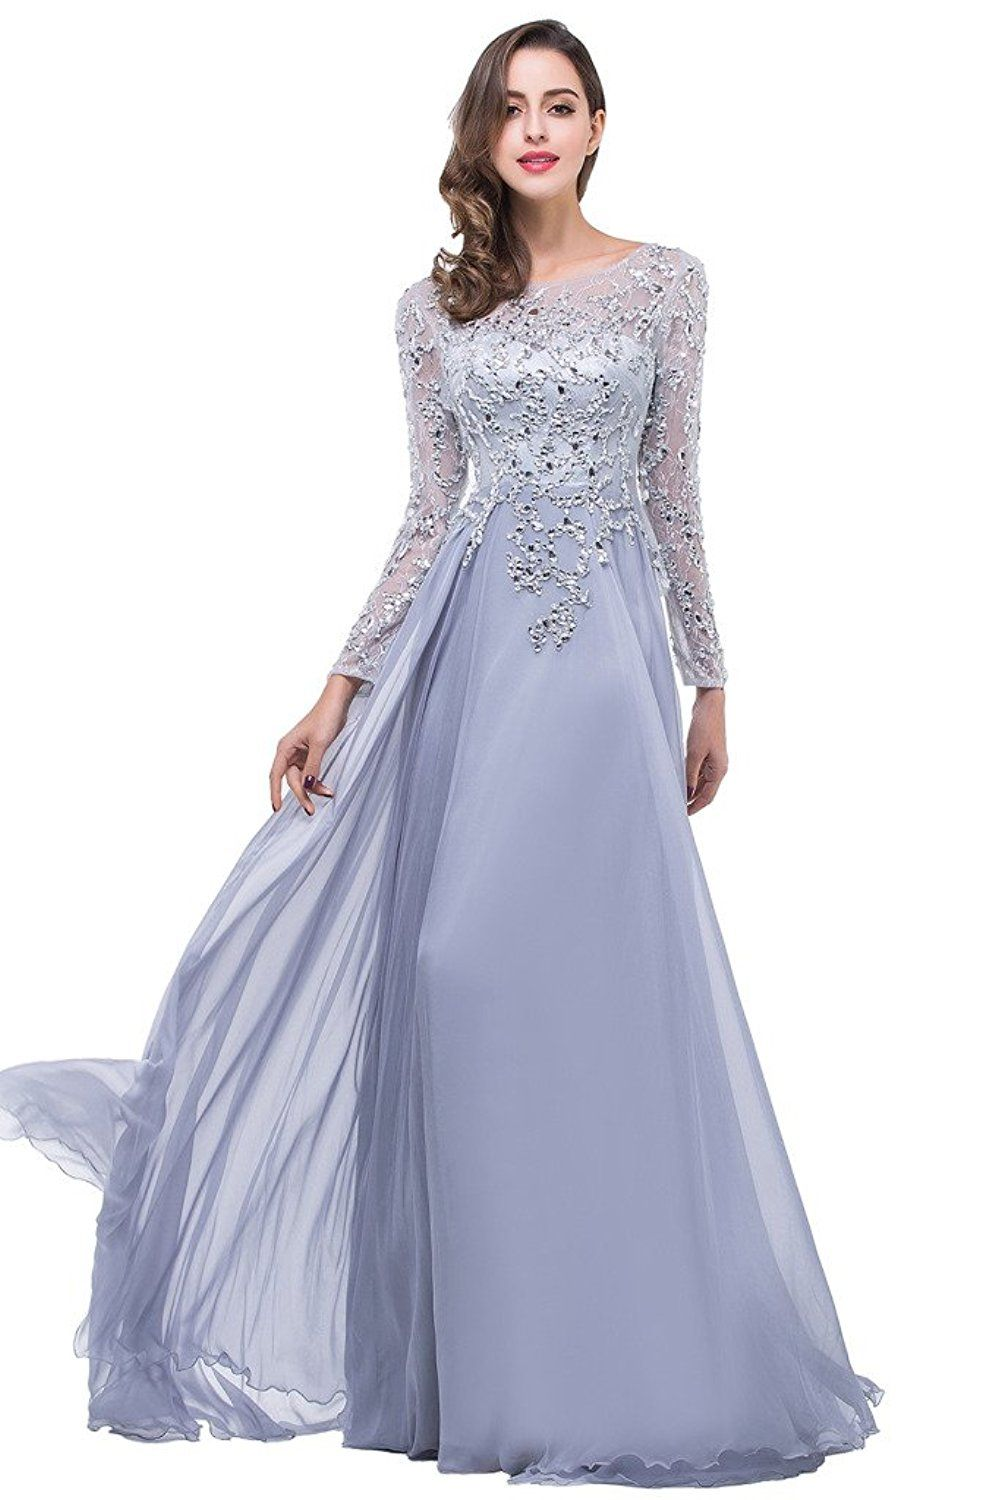 435997d8682 Babyonline Lace Mother of the Bride Dresses with Long Sleeves Evening Gowns